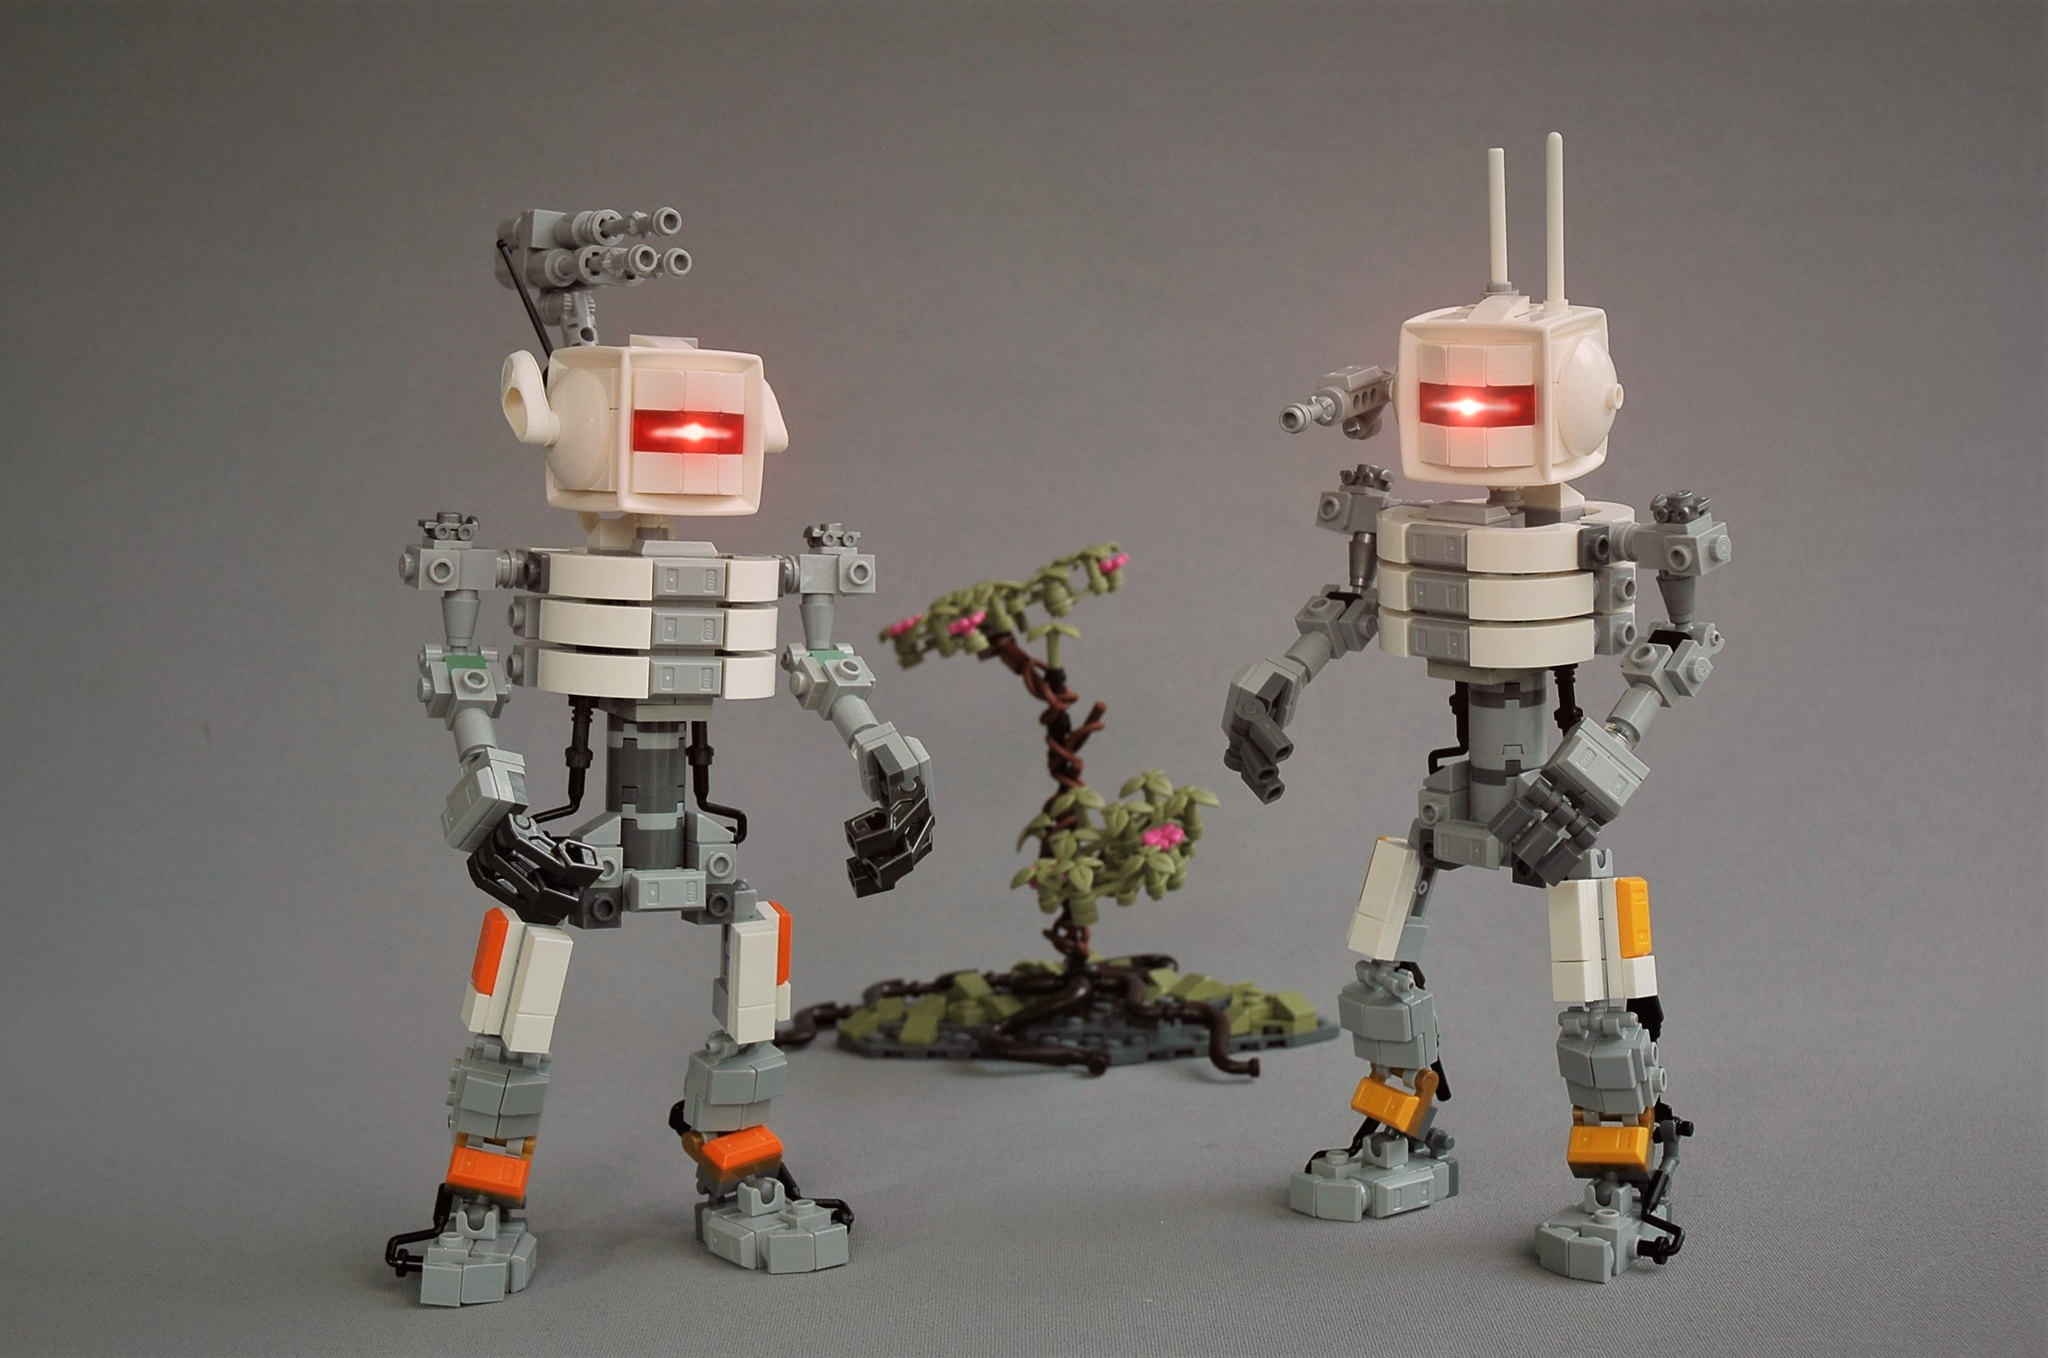 Cube-bots BN-1 and BN-2